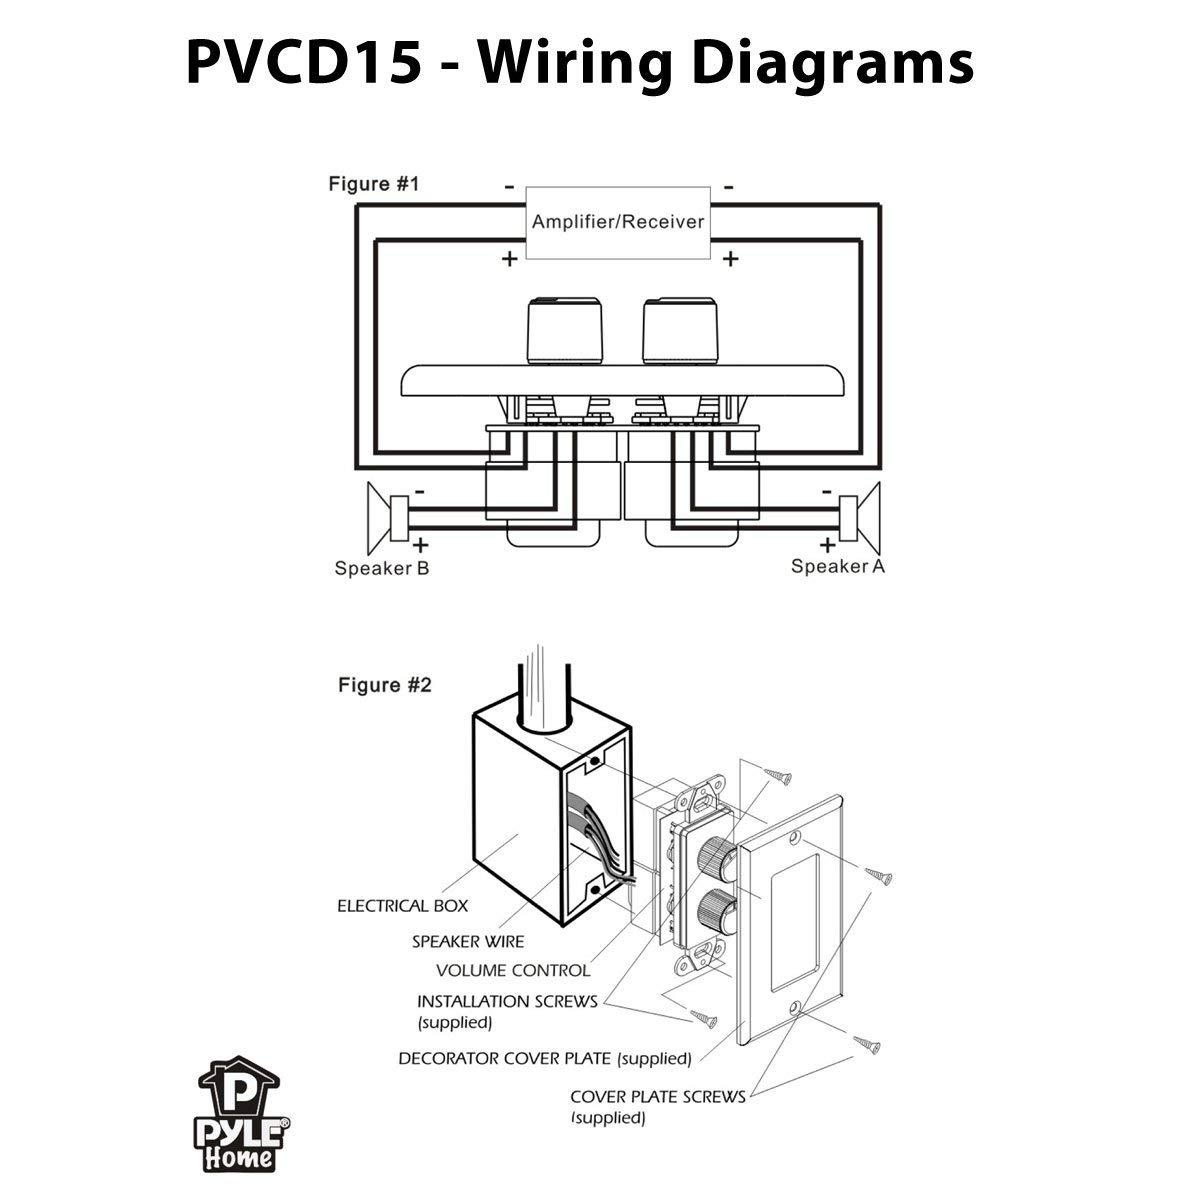 Wireing Diagram For Pc Speakers